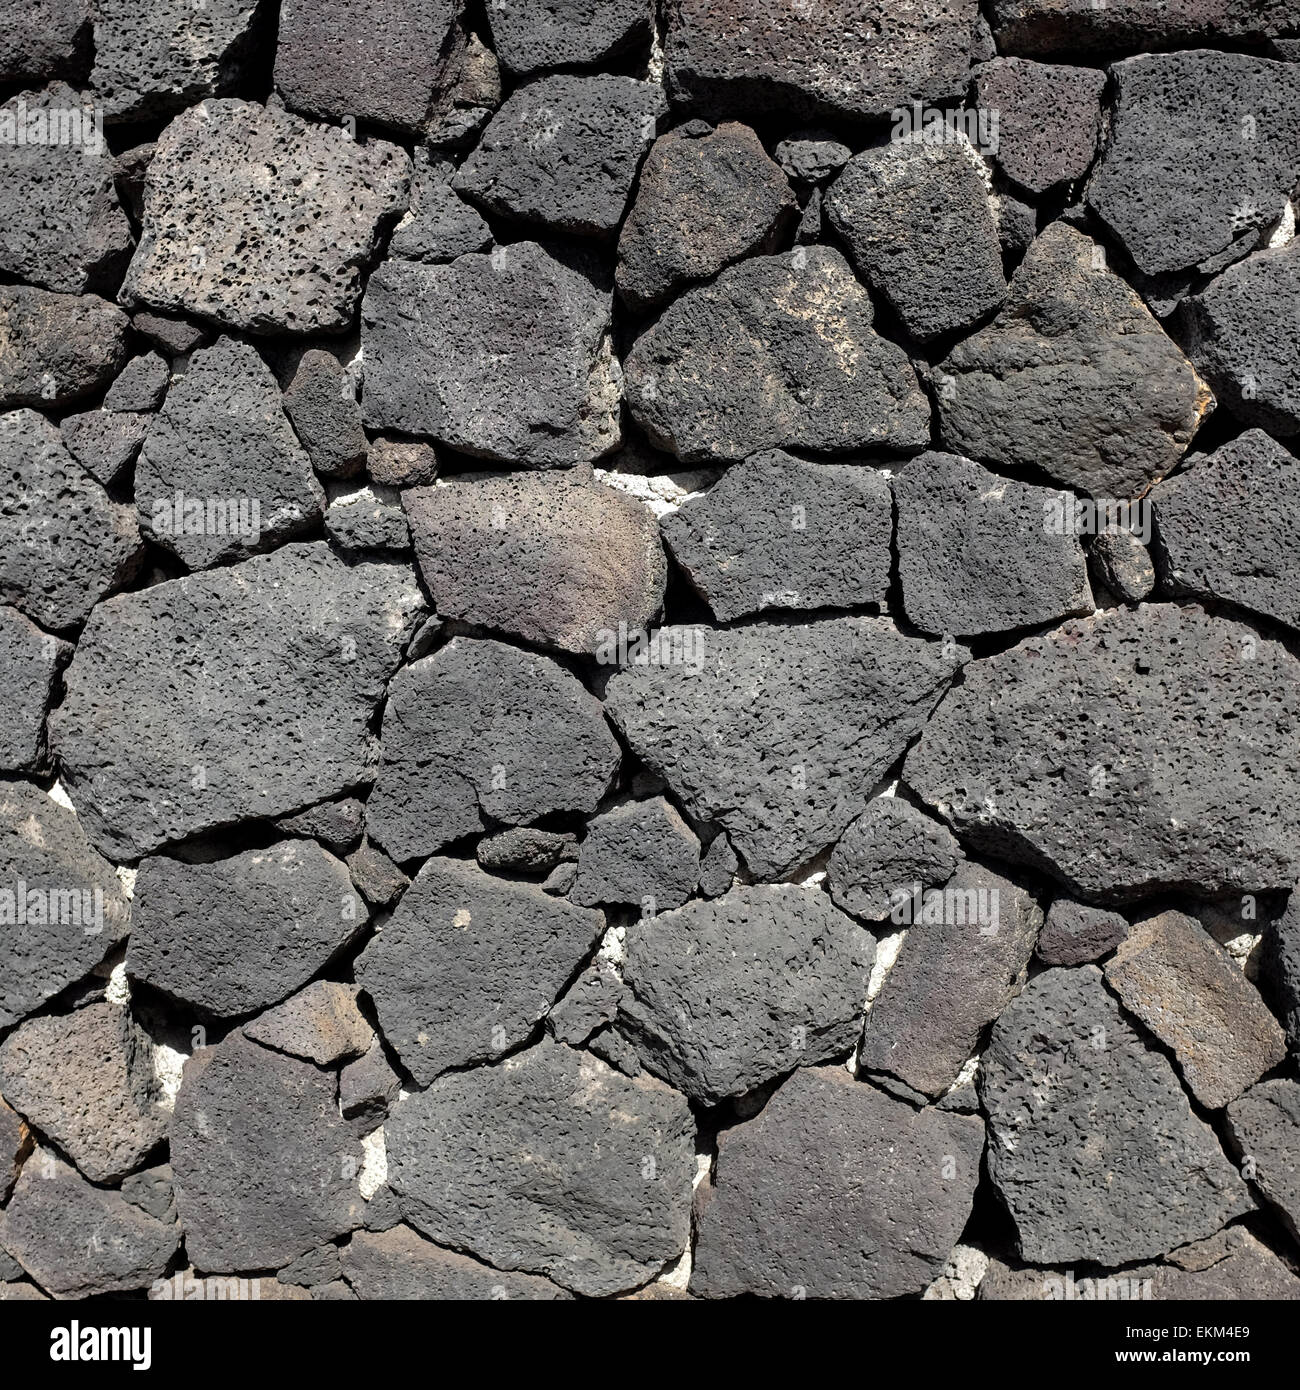 Stone wall made from volcanic rock in Lanzarote - Stock Image